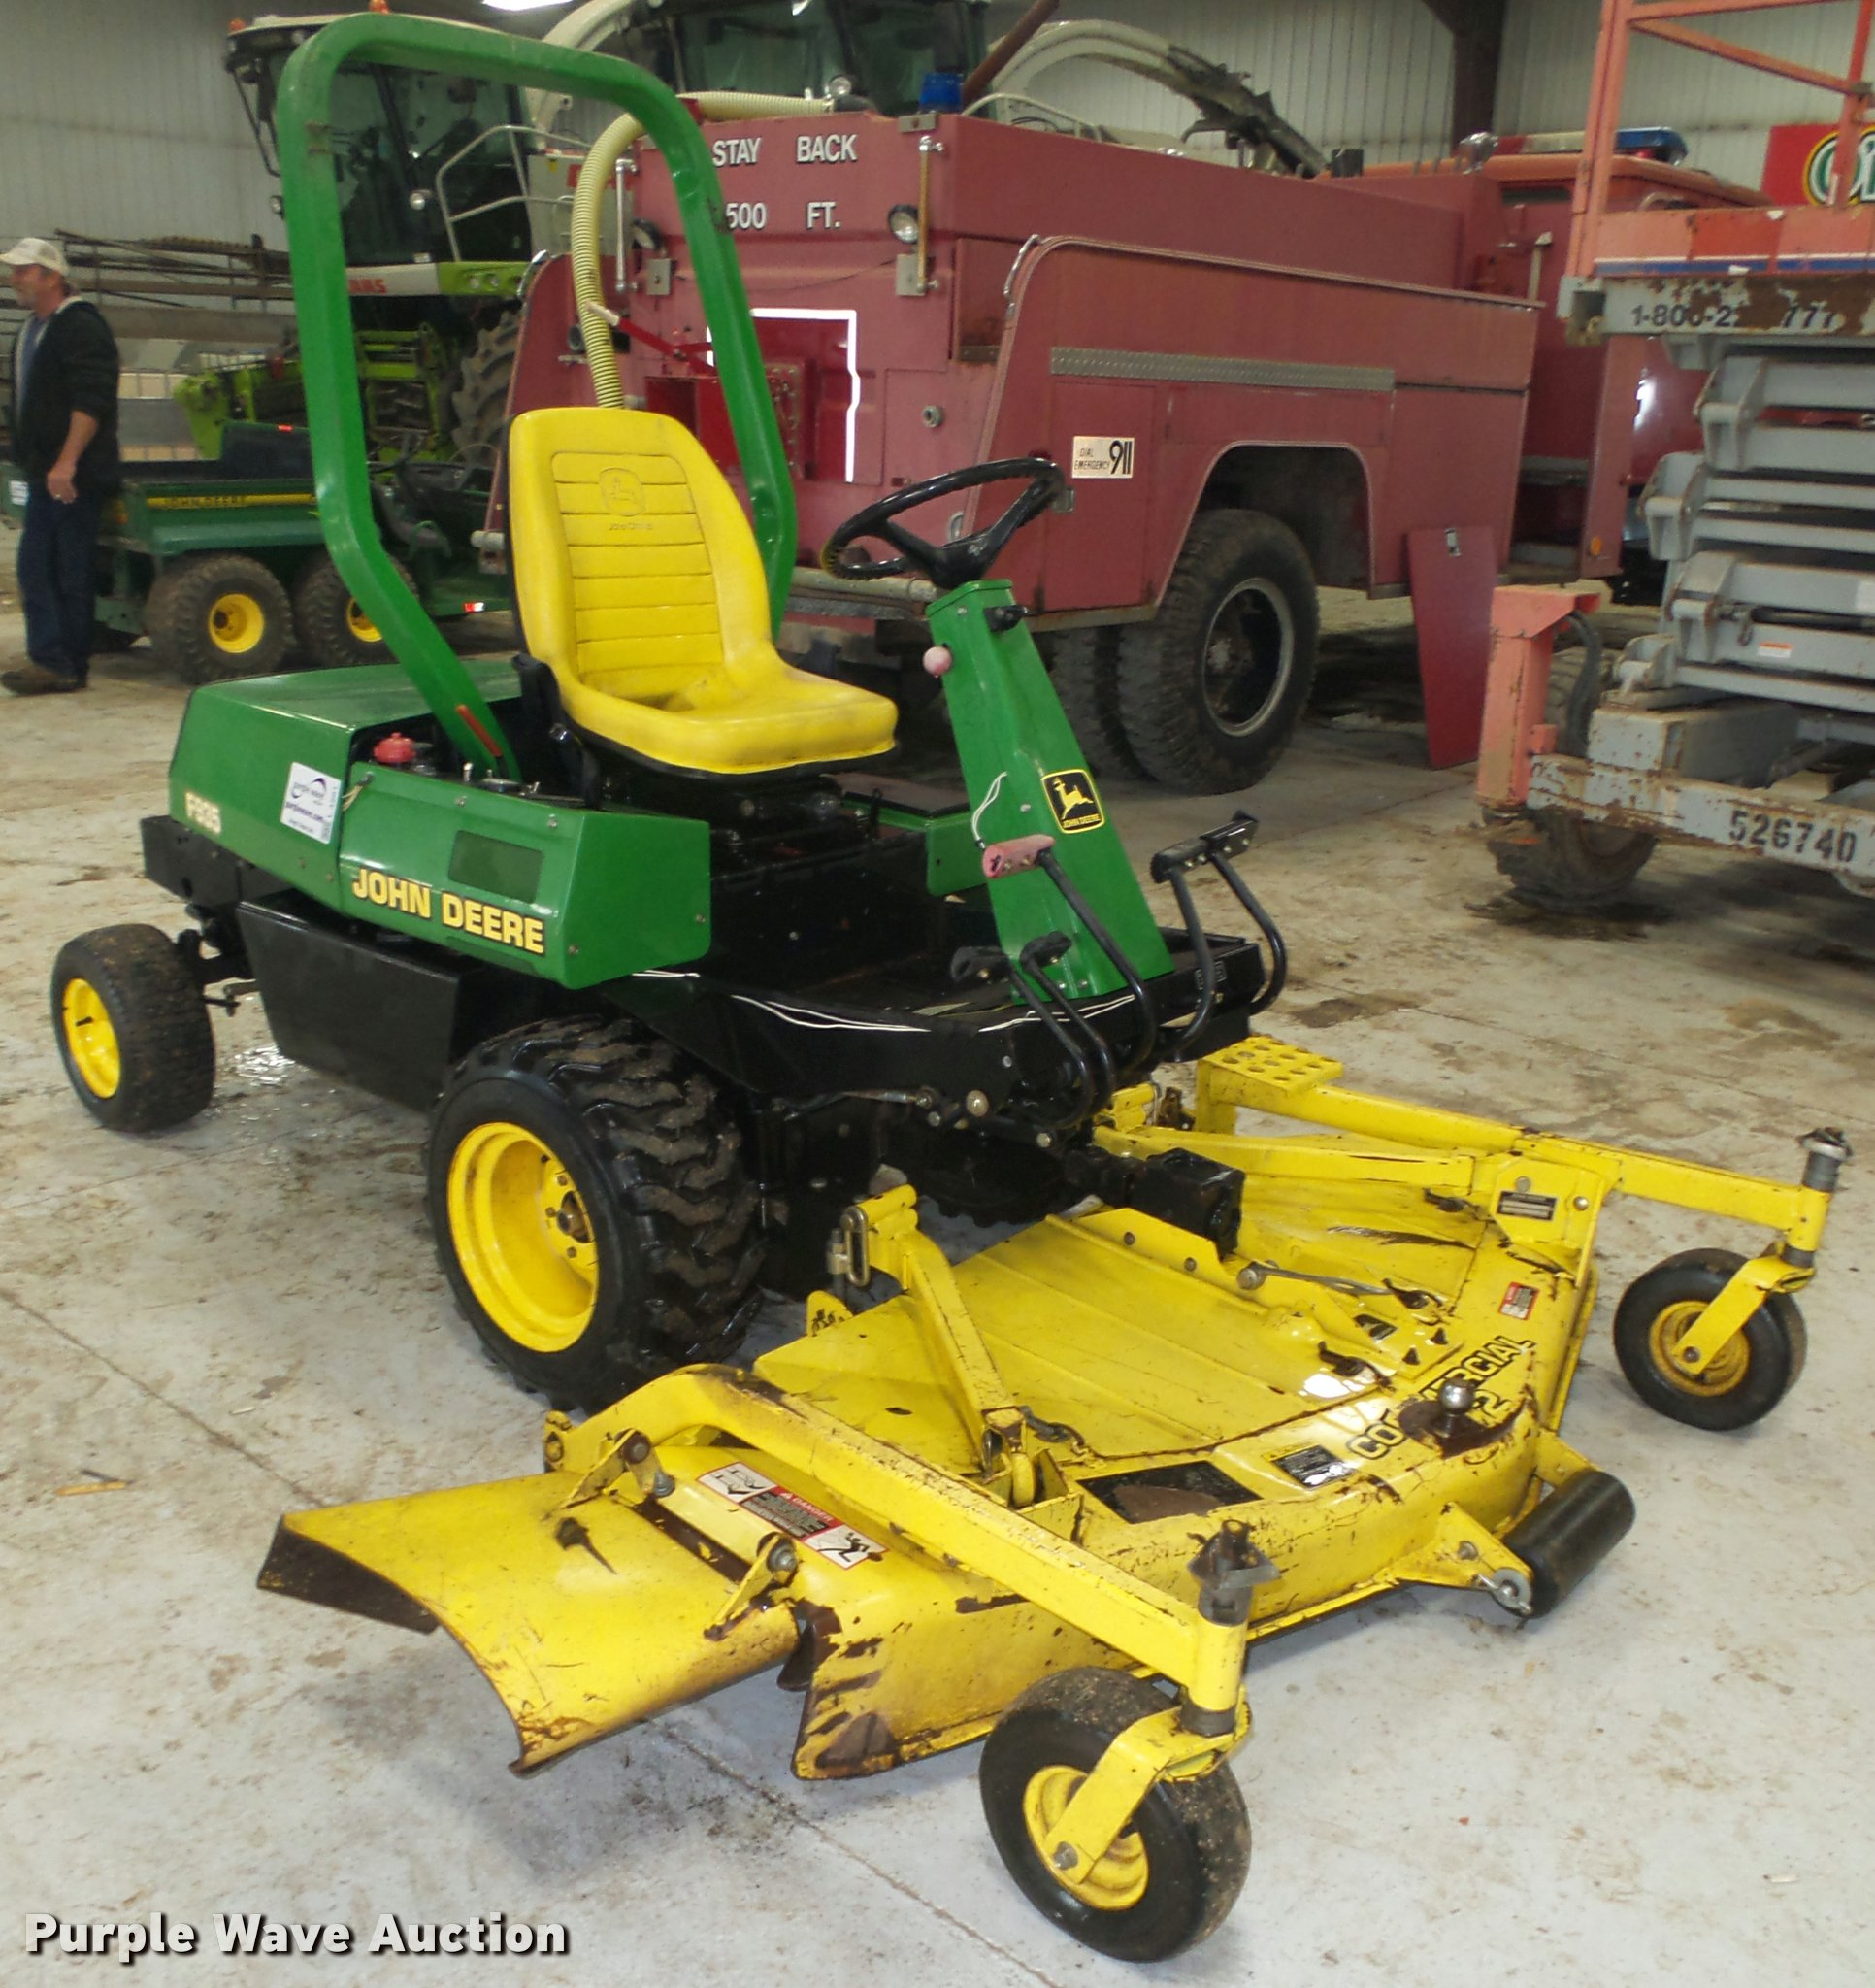 John Deere F935 ZTR lawn mower | Item L4201 | SOLD! January